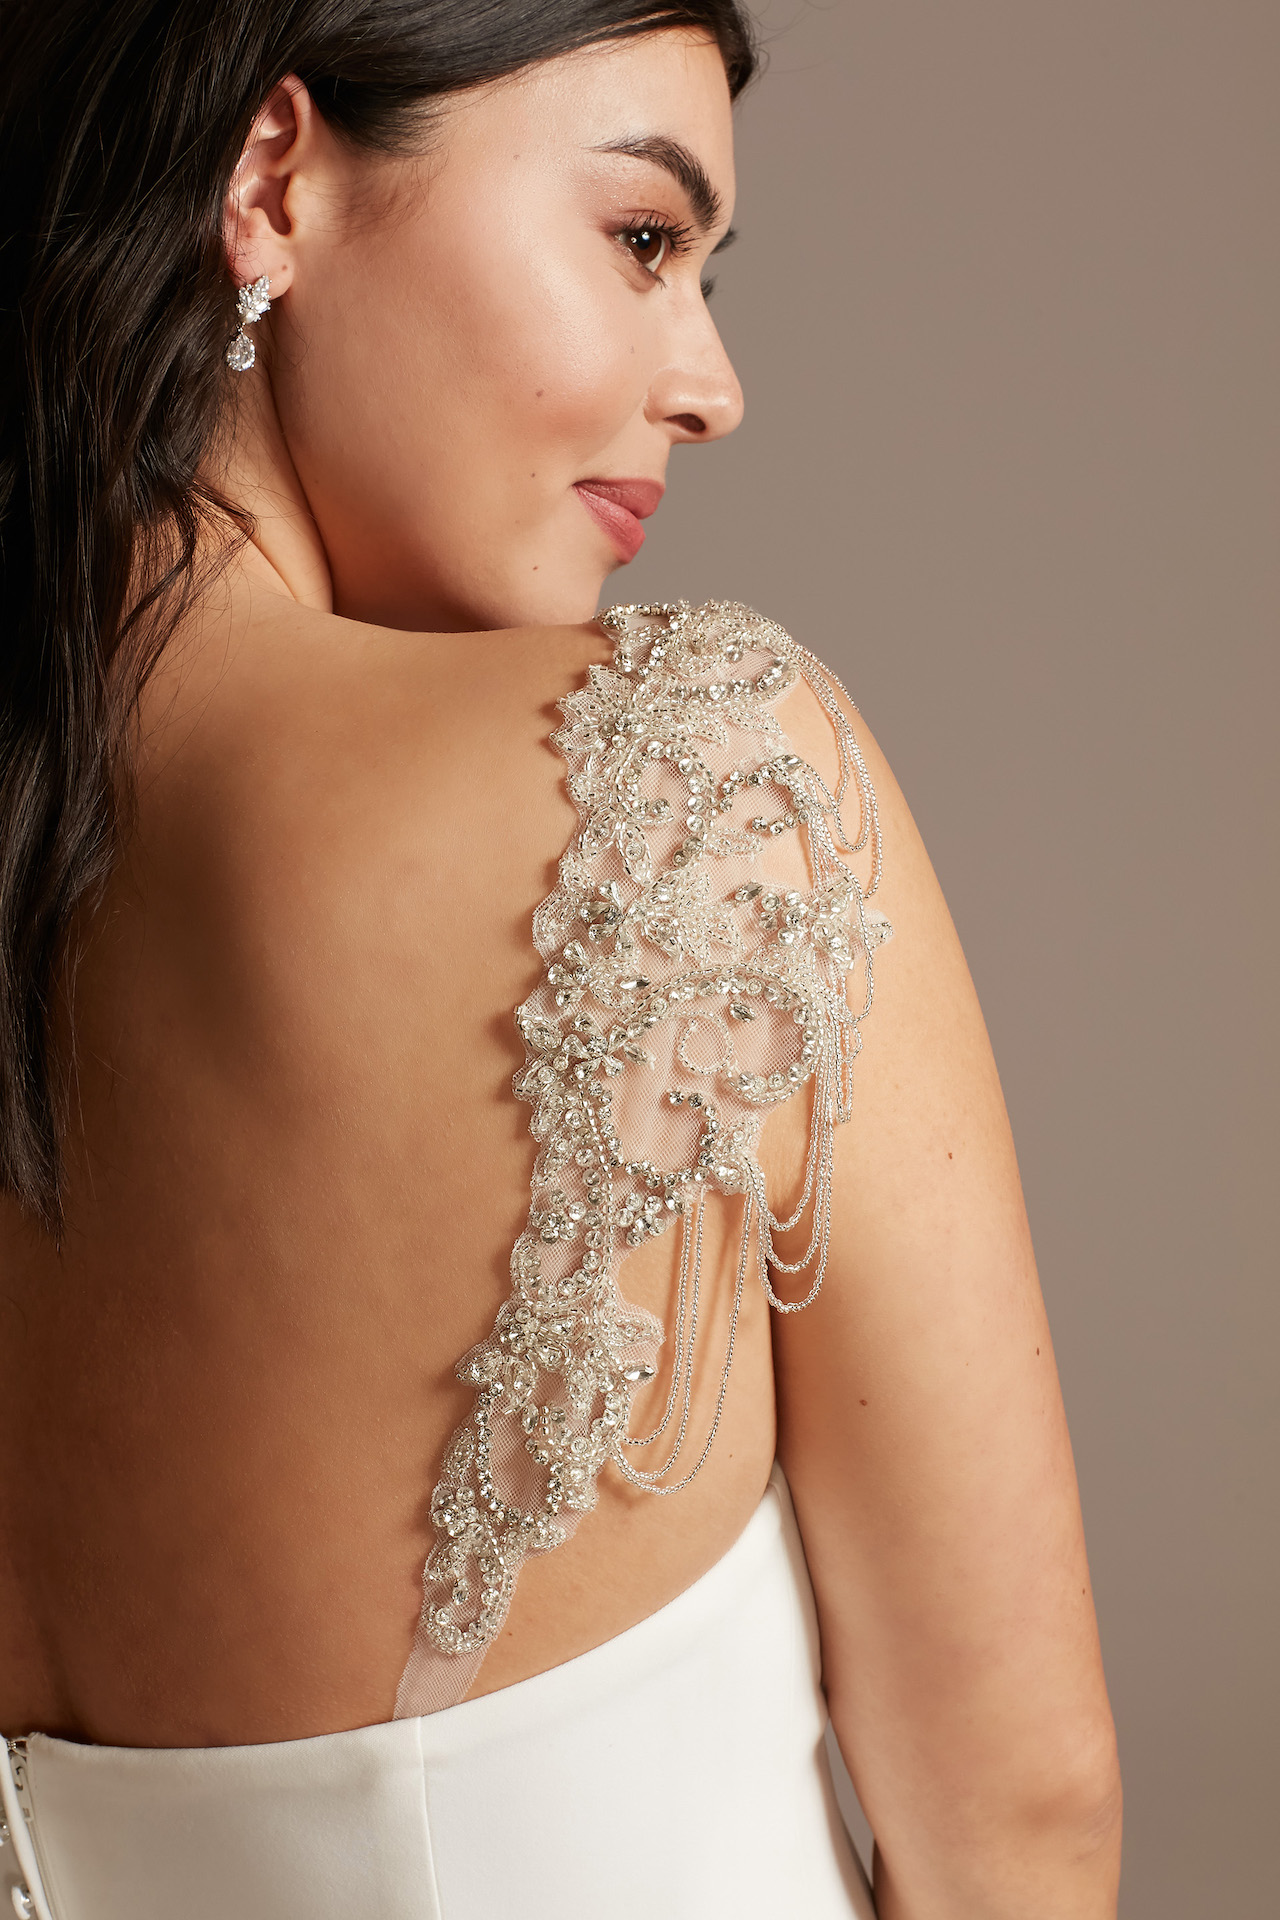 bride with ornate beaded straps on her dress